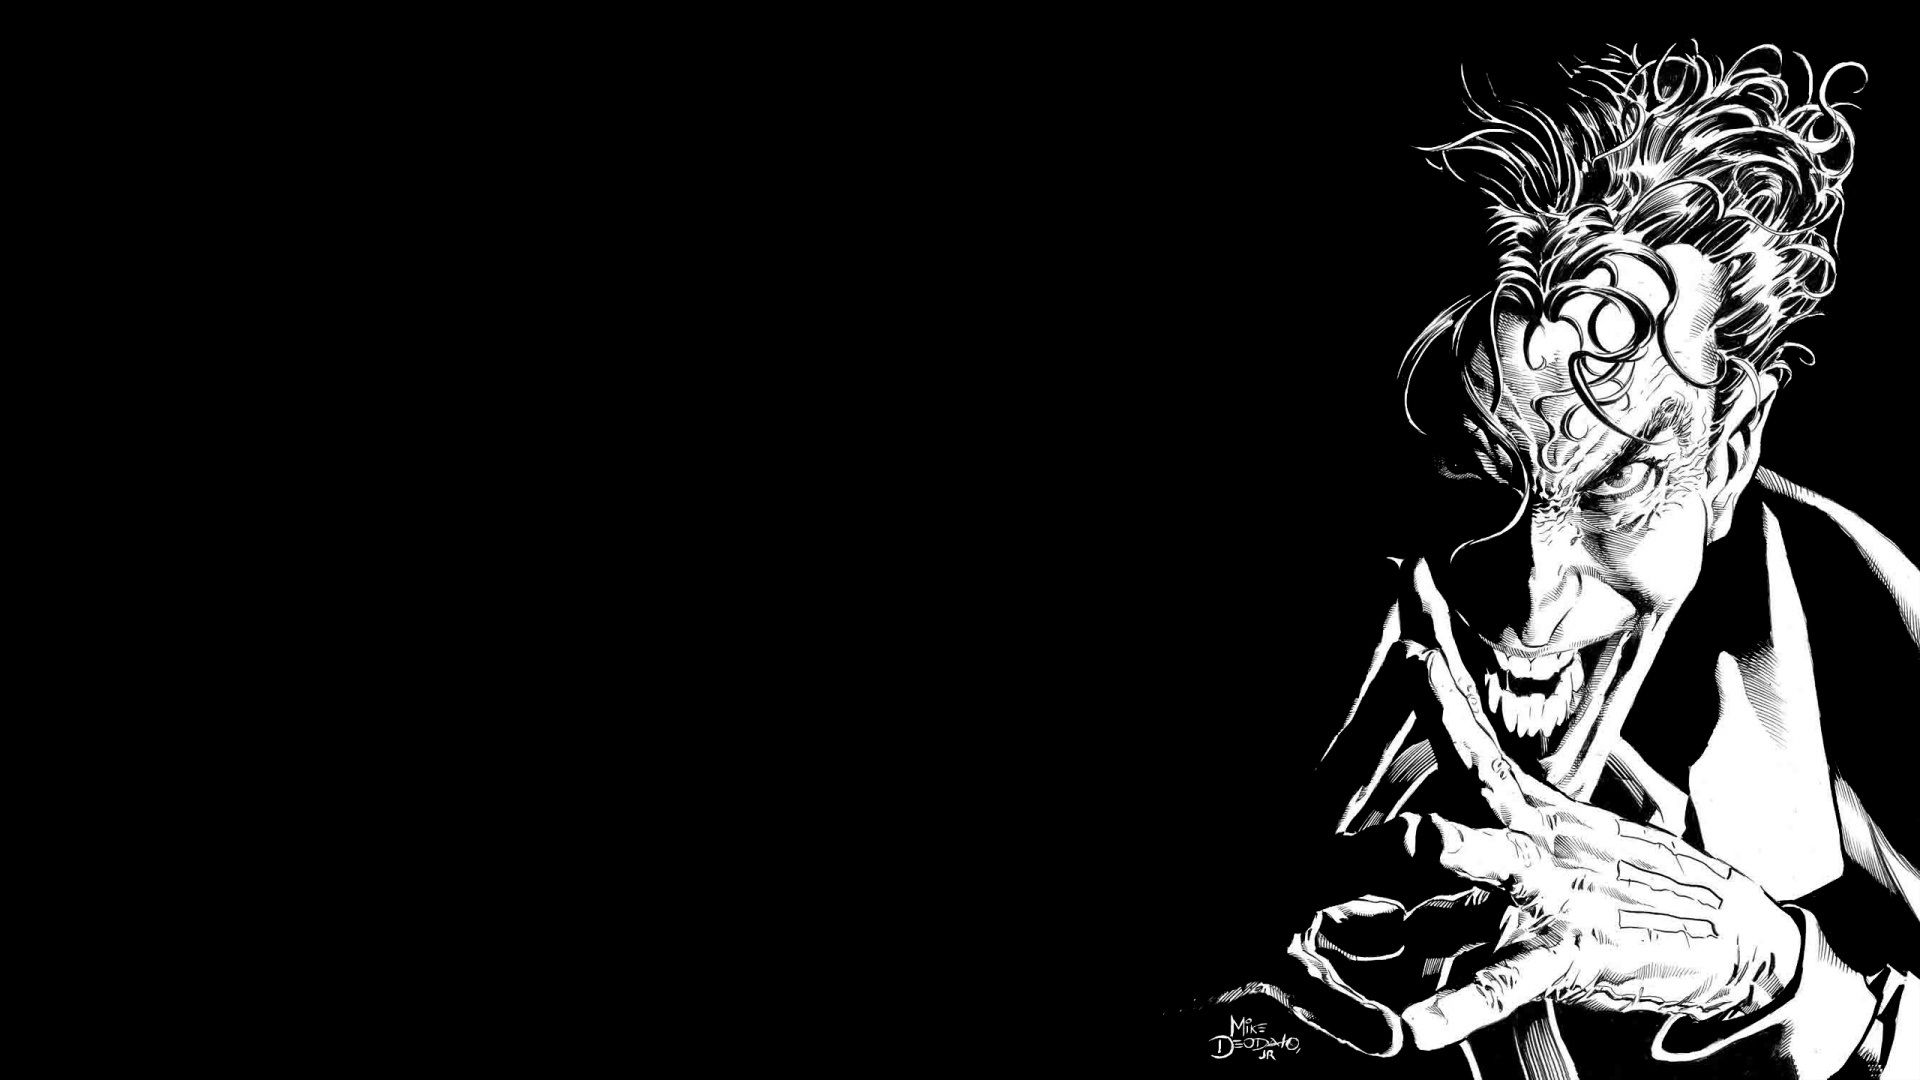 Joker Wallpapers Dark Knight Wallpaper 1280x800 41